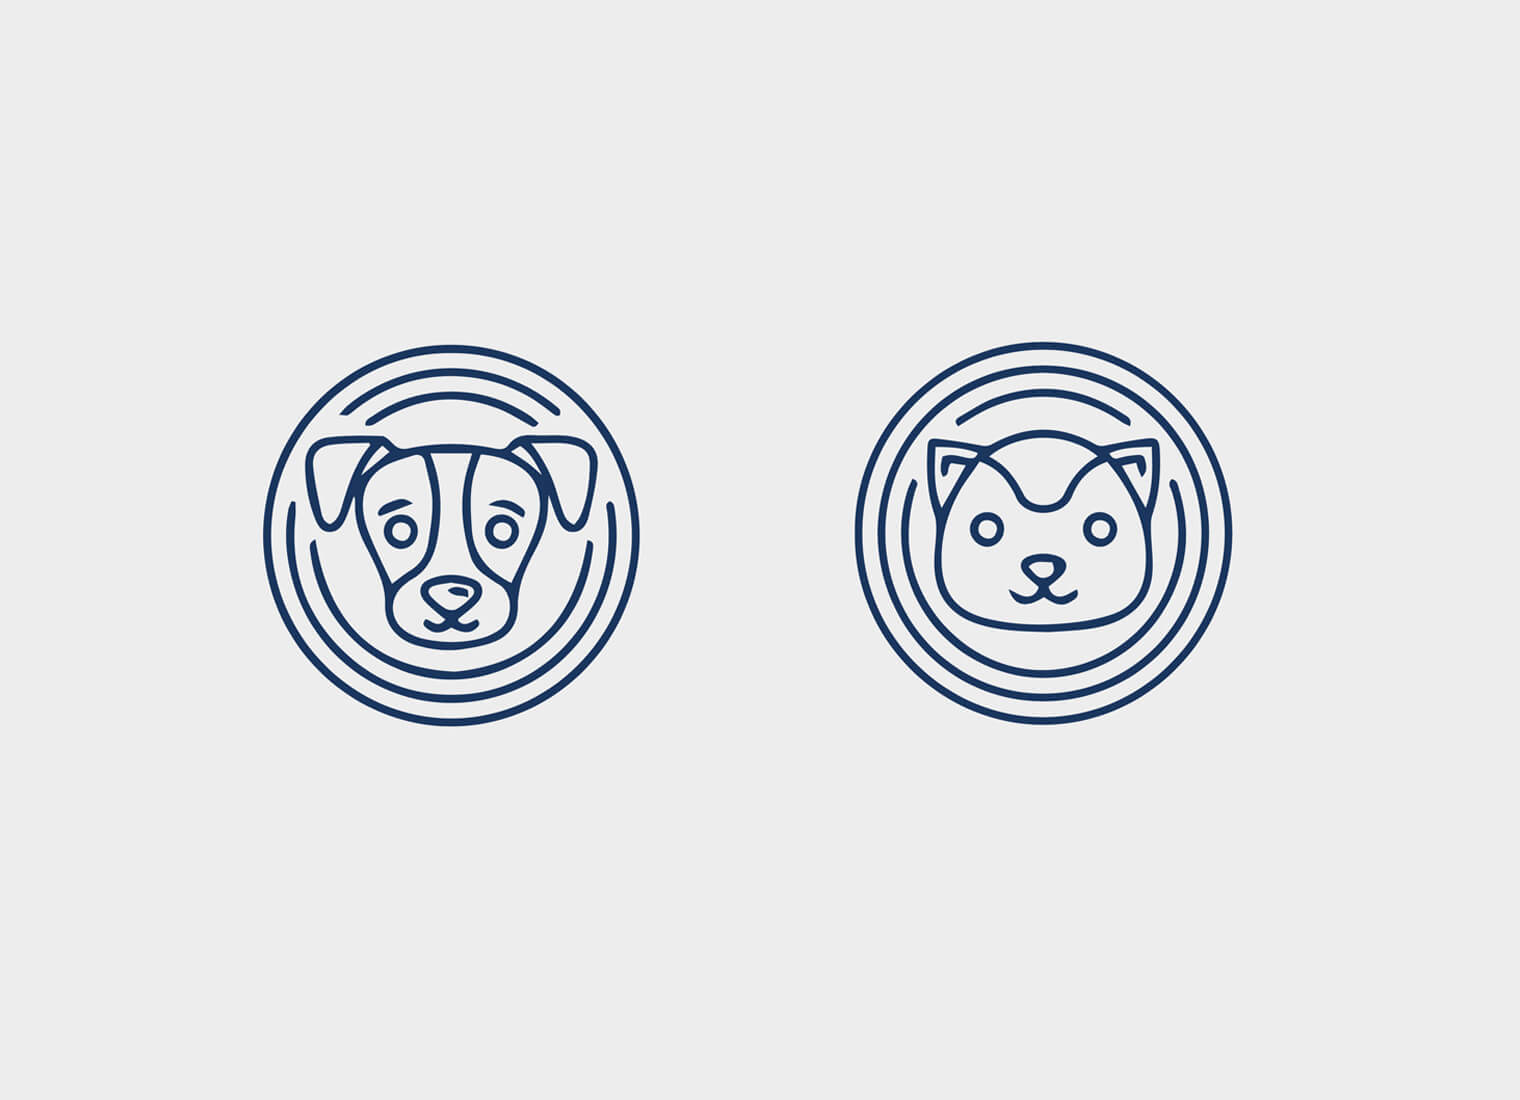 MadeO-Images-Half-HMcB-icons